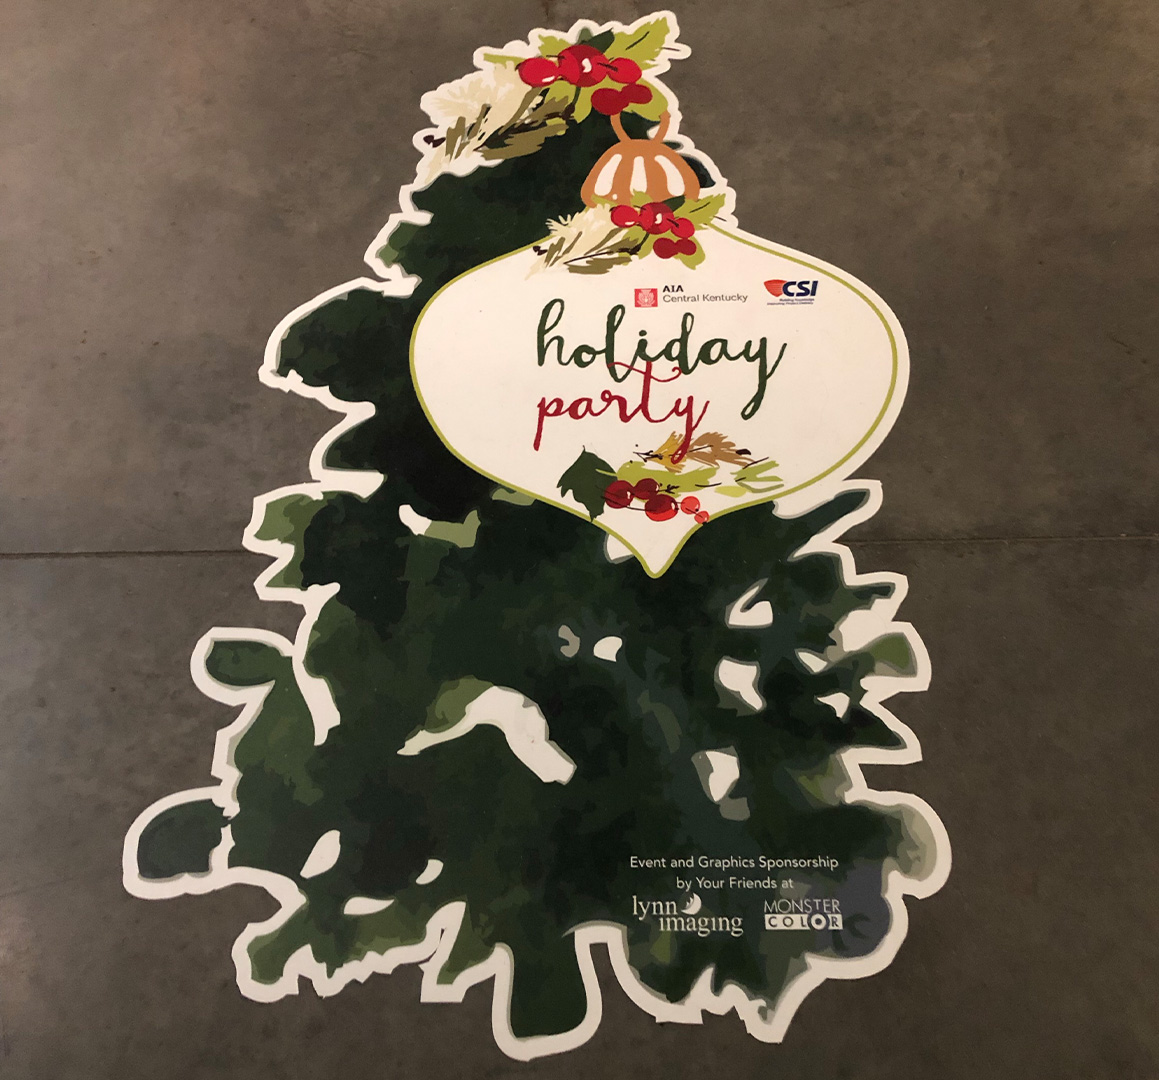 Holiday party floor decal